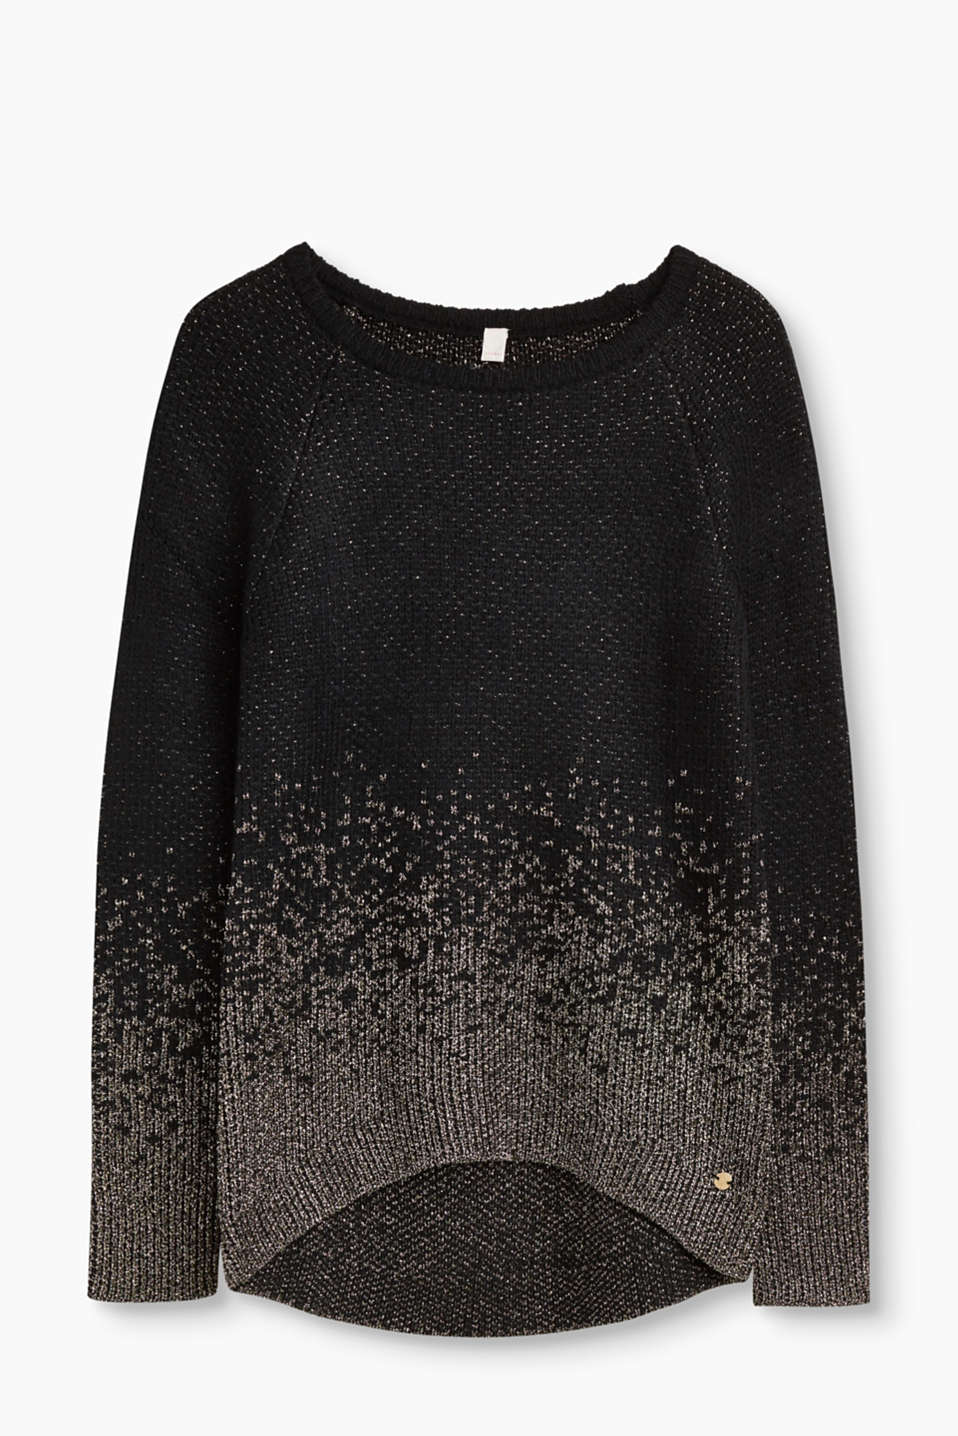 Esprit - Textured jumper with lurex effects